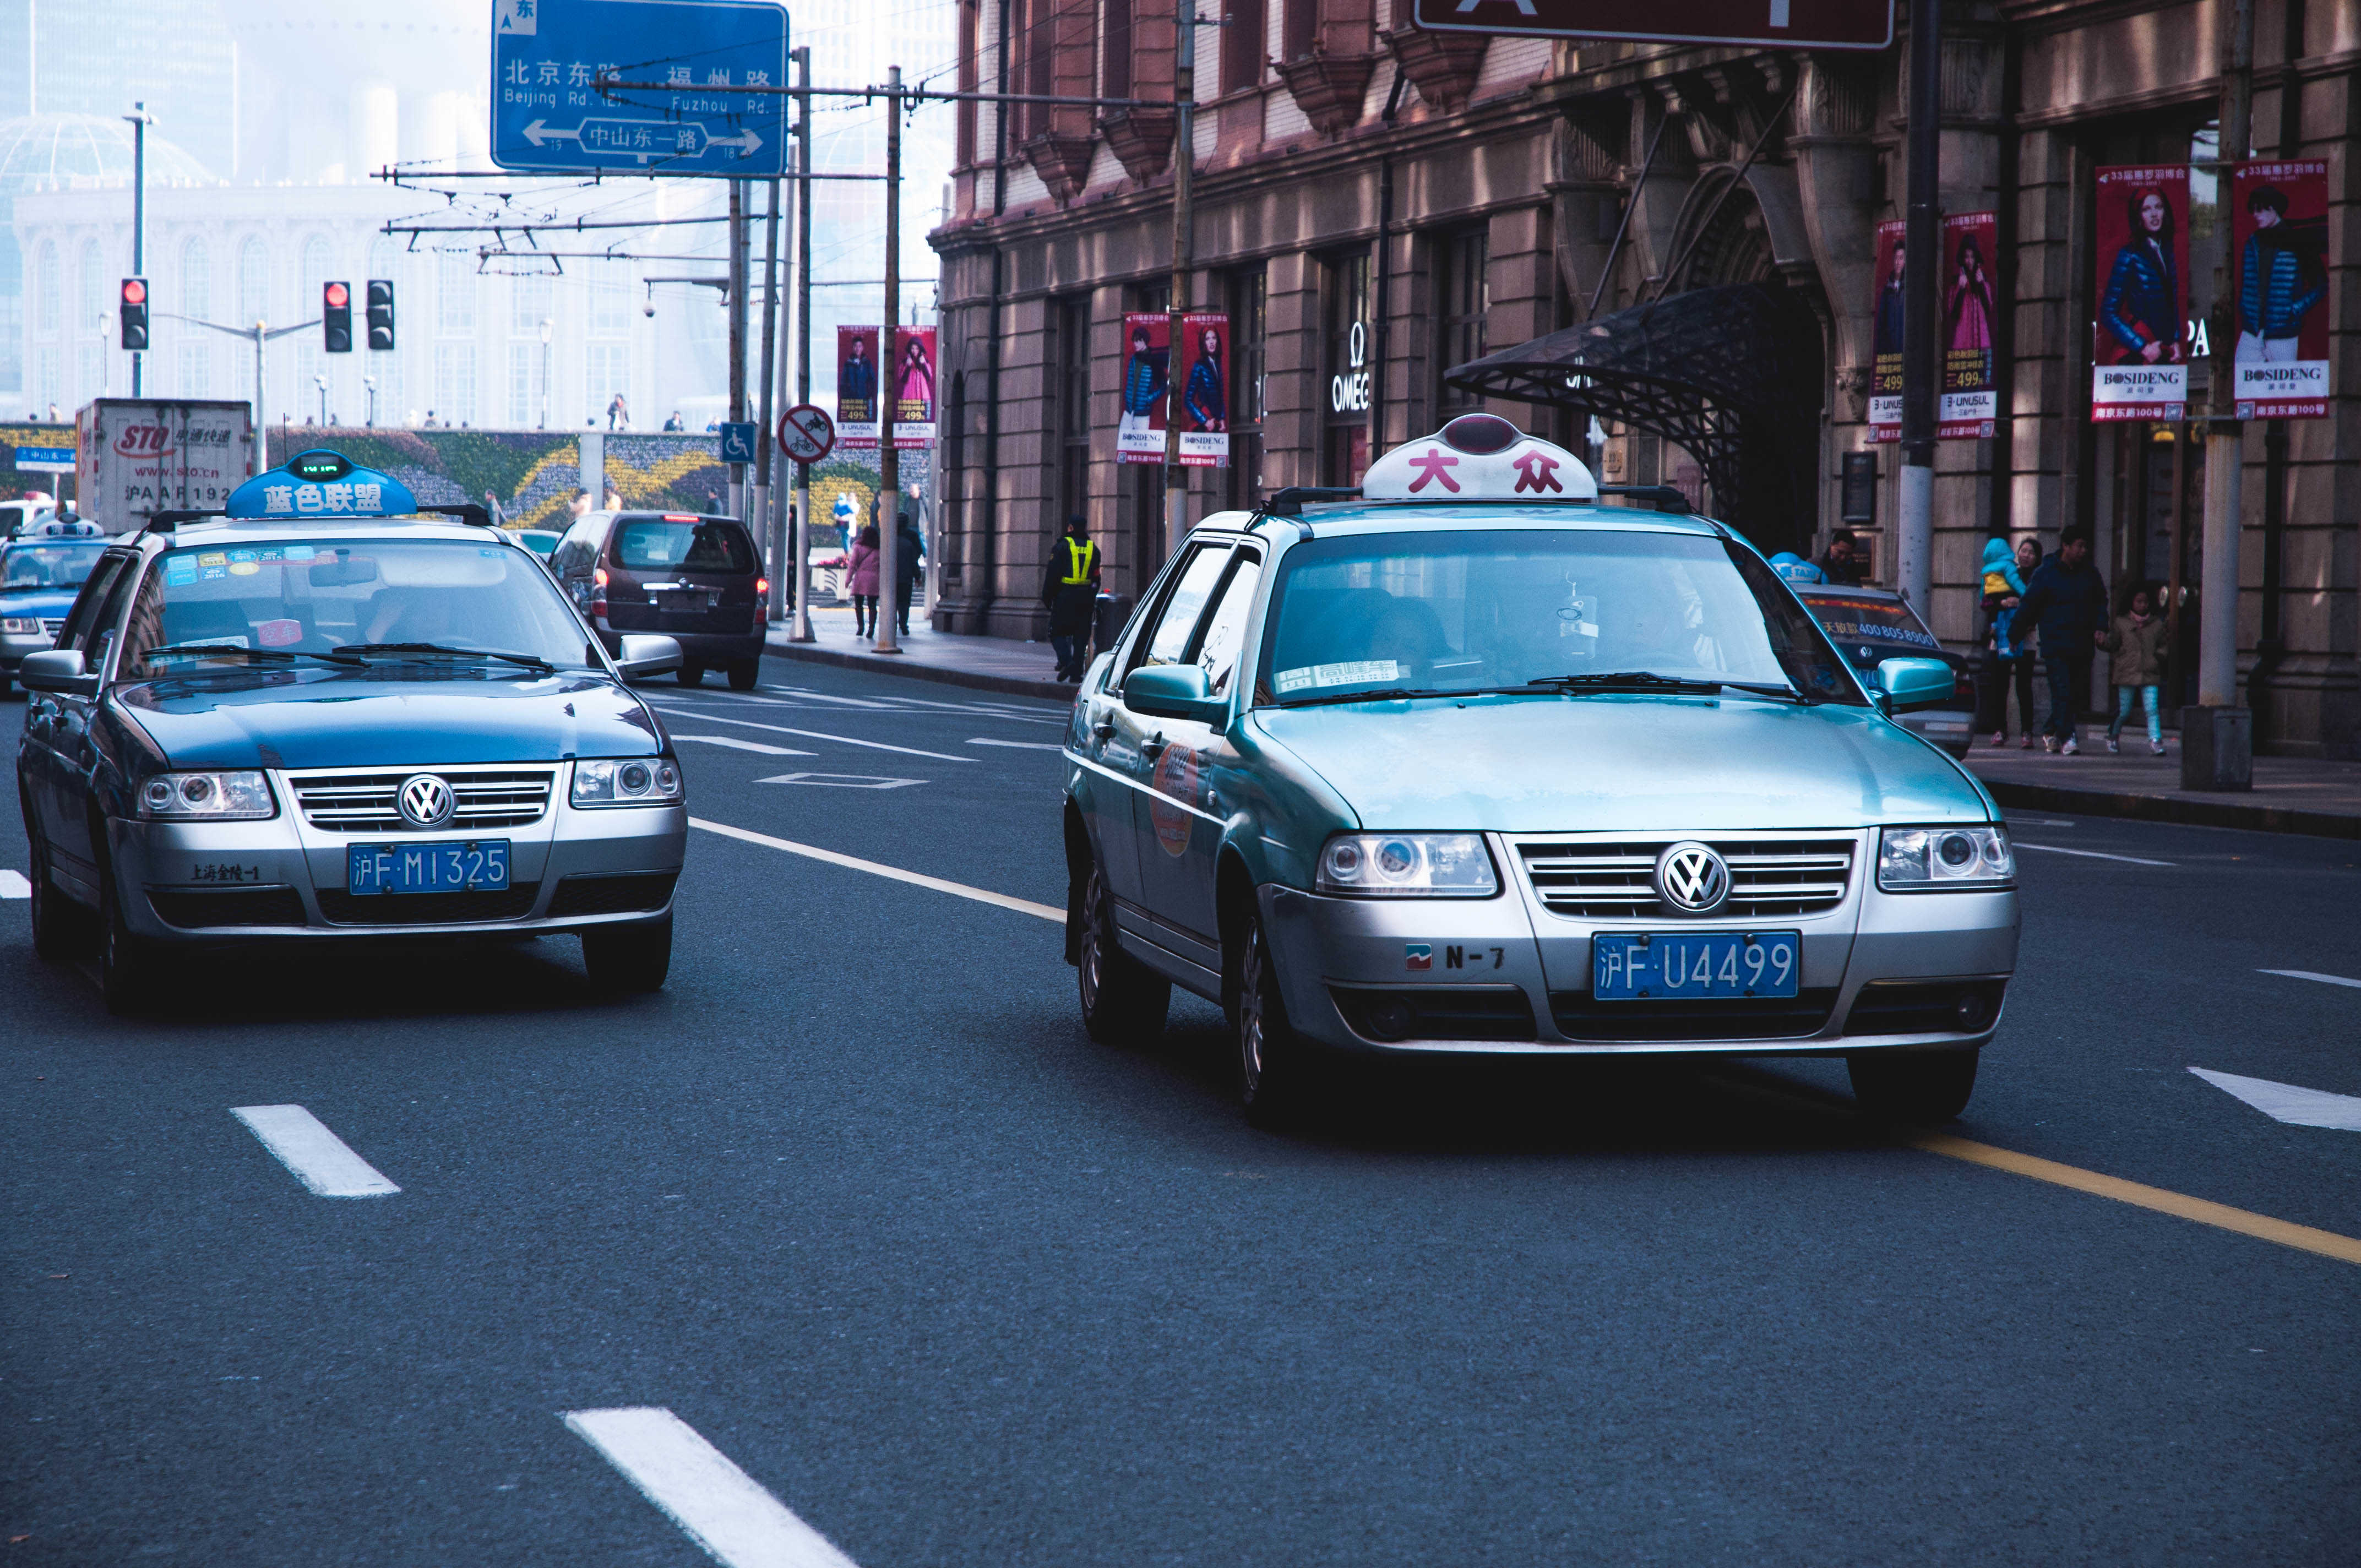 Didi Chuxing is China's answer to Uber, but is much bigger. Apple just made a $1 billion 'strategic' investment in the company.